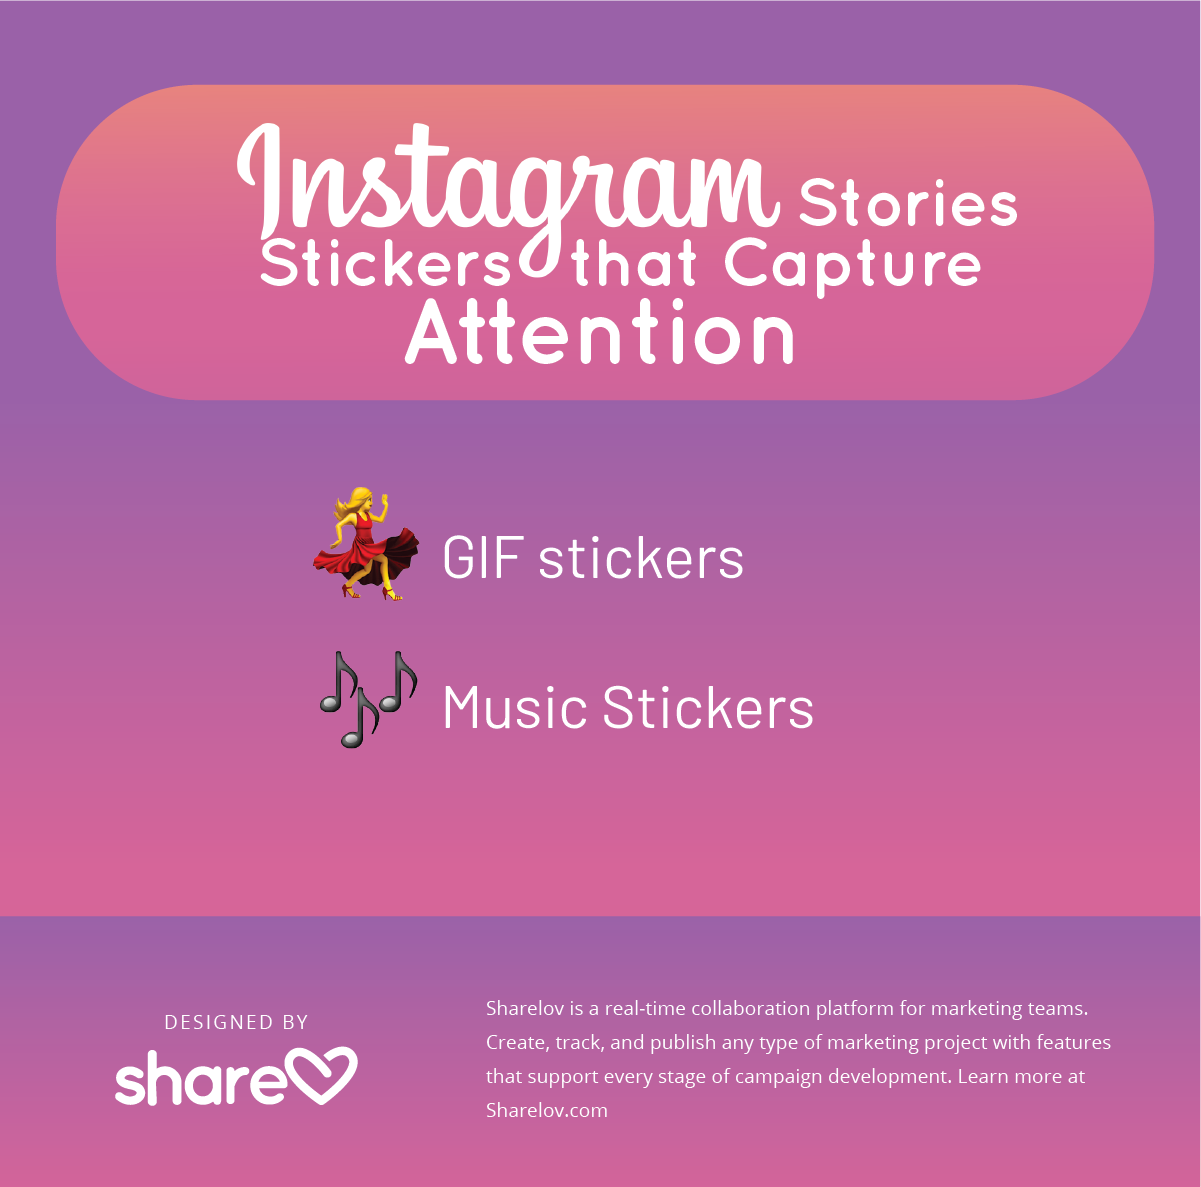 Instagram Stories Stickers that Capture Attention